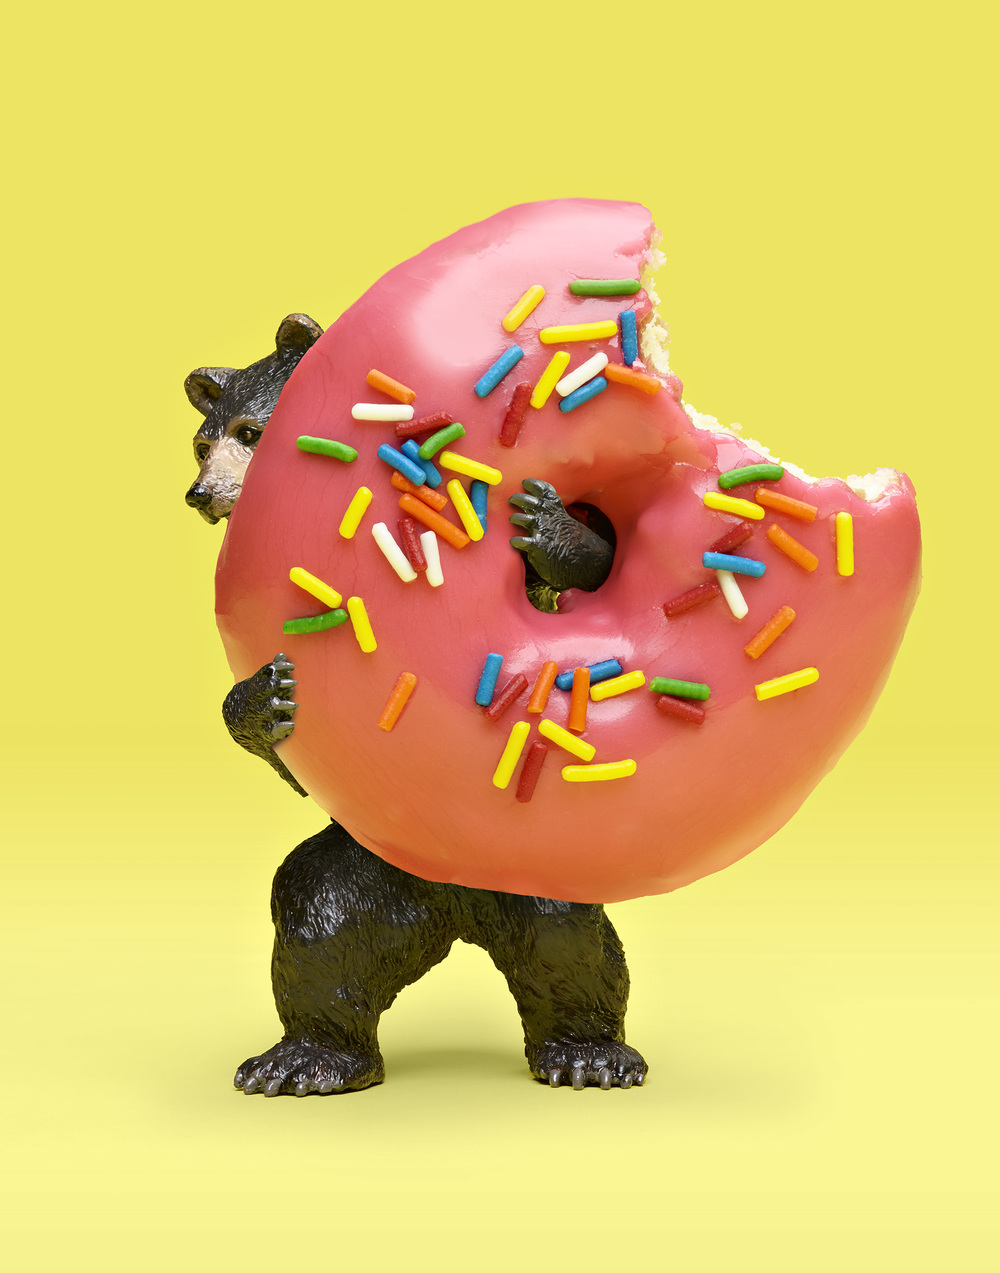 Tiny Bear holding a Giant Donut - Bear Baiting Illustration